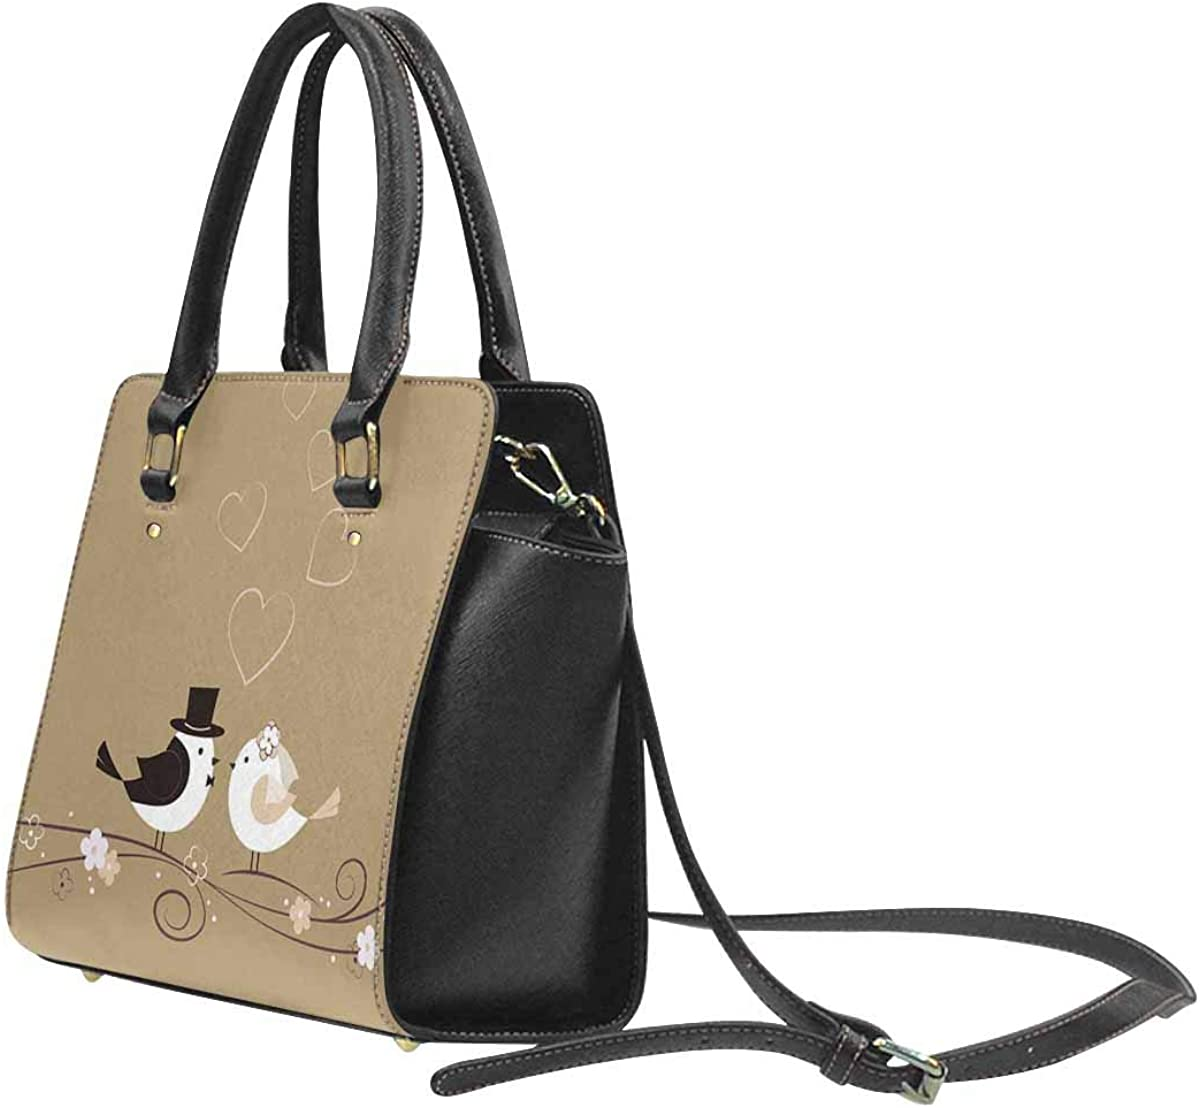 InterestPrint Wedding with Birds Handbags for Women Ladies Purses Top Handle PU Leather Shoulder Bags